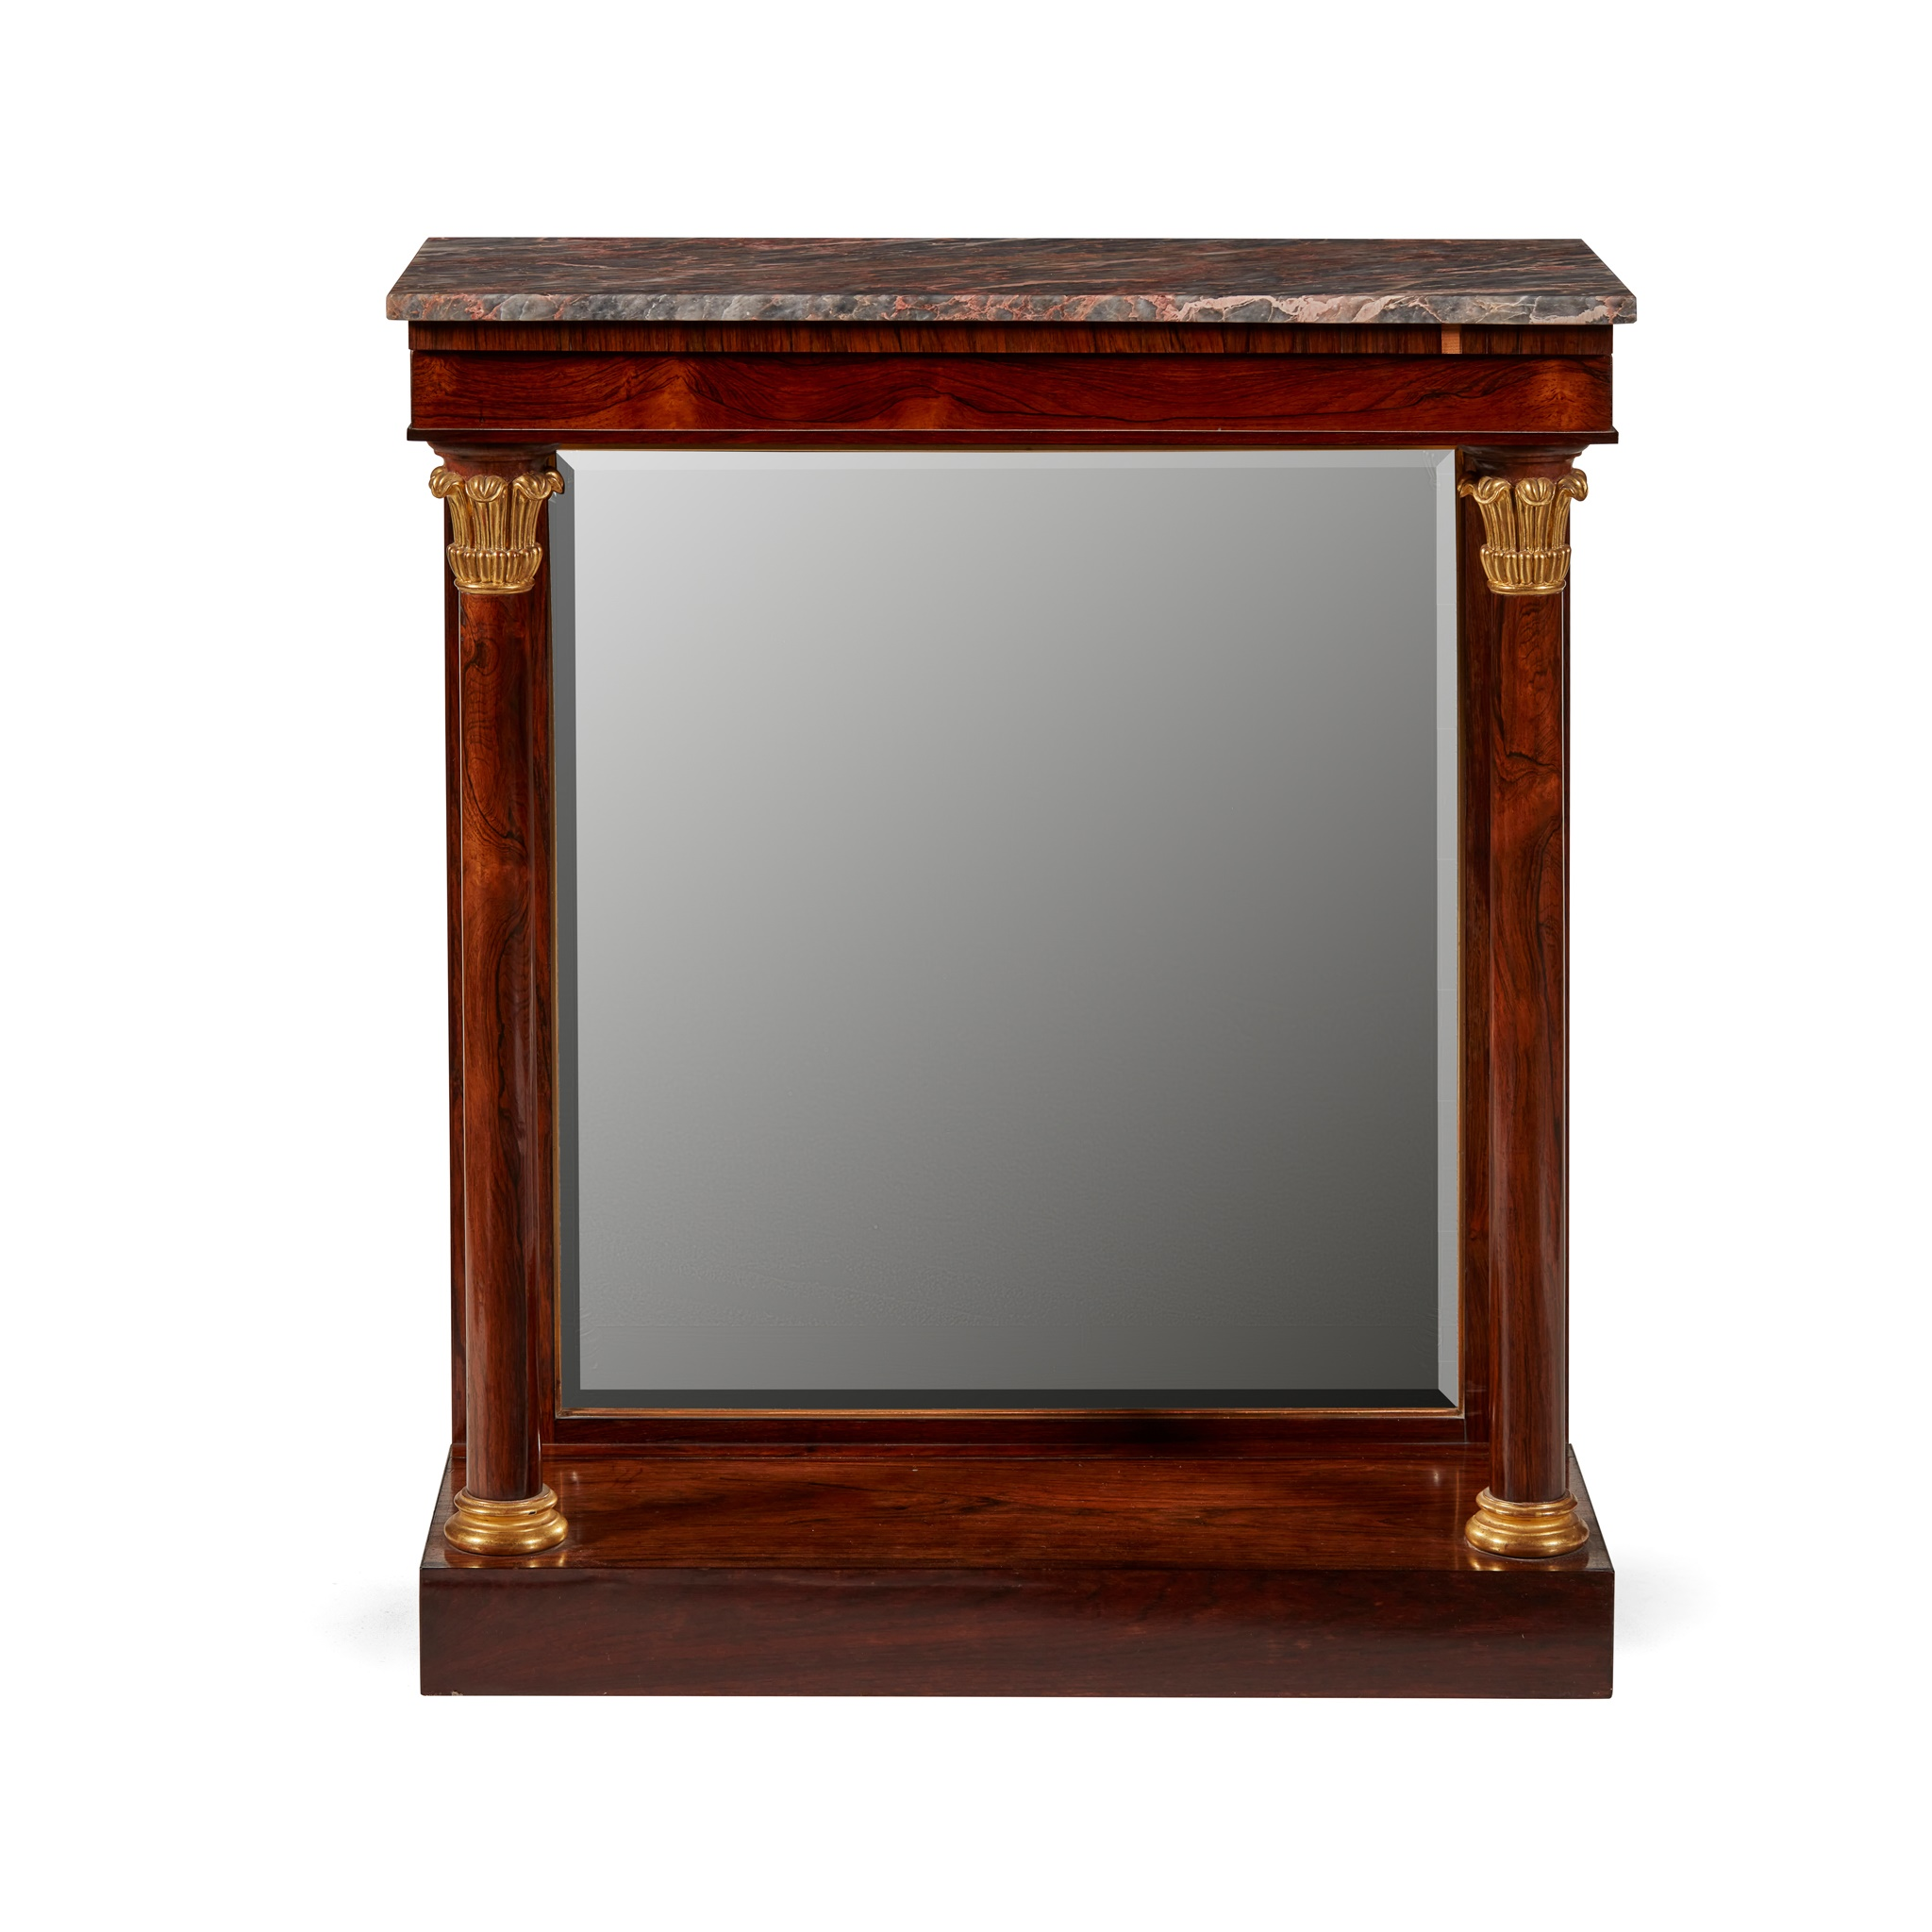 Y REGENCY ROSEWOOD AND PARCEL GILT CONSOLE TABLE EARLY 19TH CENTURY - Image 2 of 2